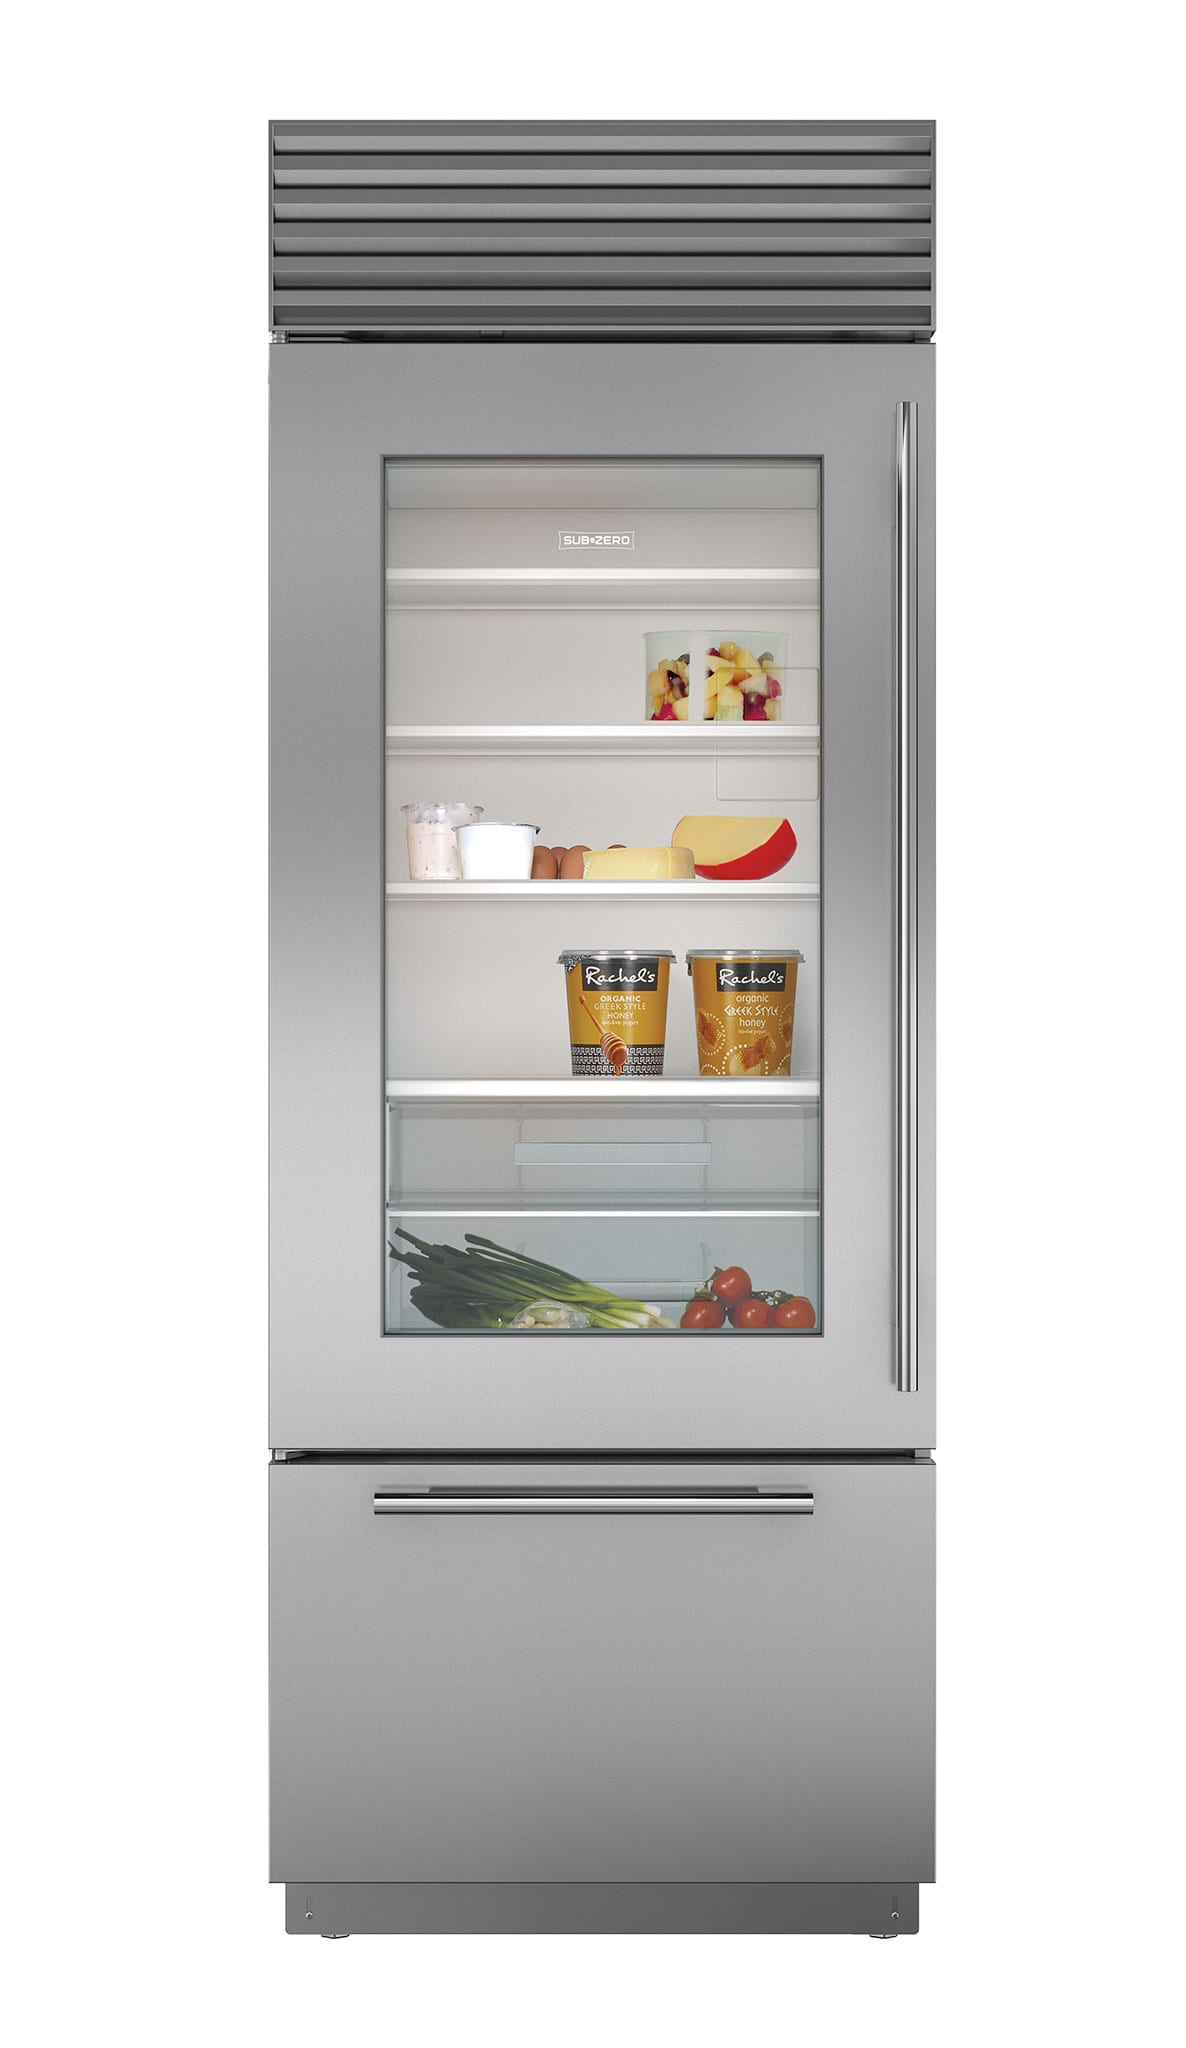 sub zerofull size refrigerationbuiltin refrigerators30 - Refridgerator Glass Door